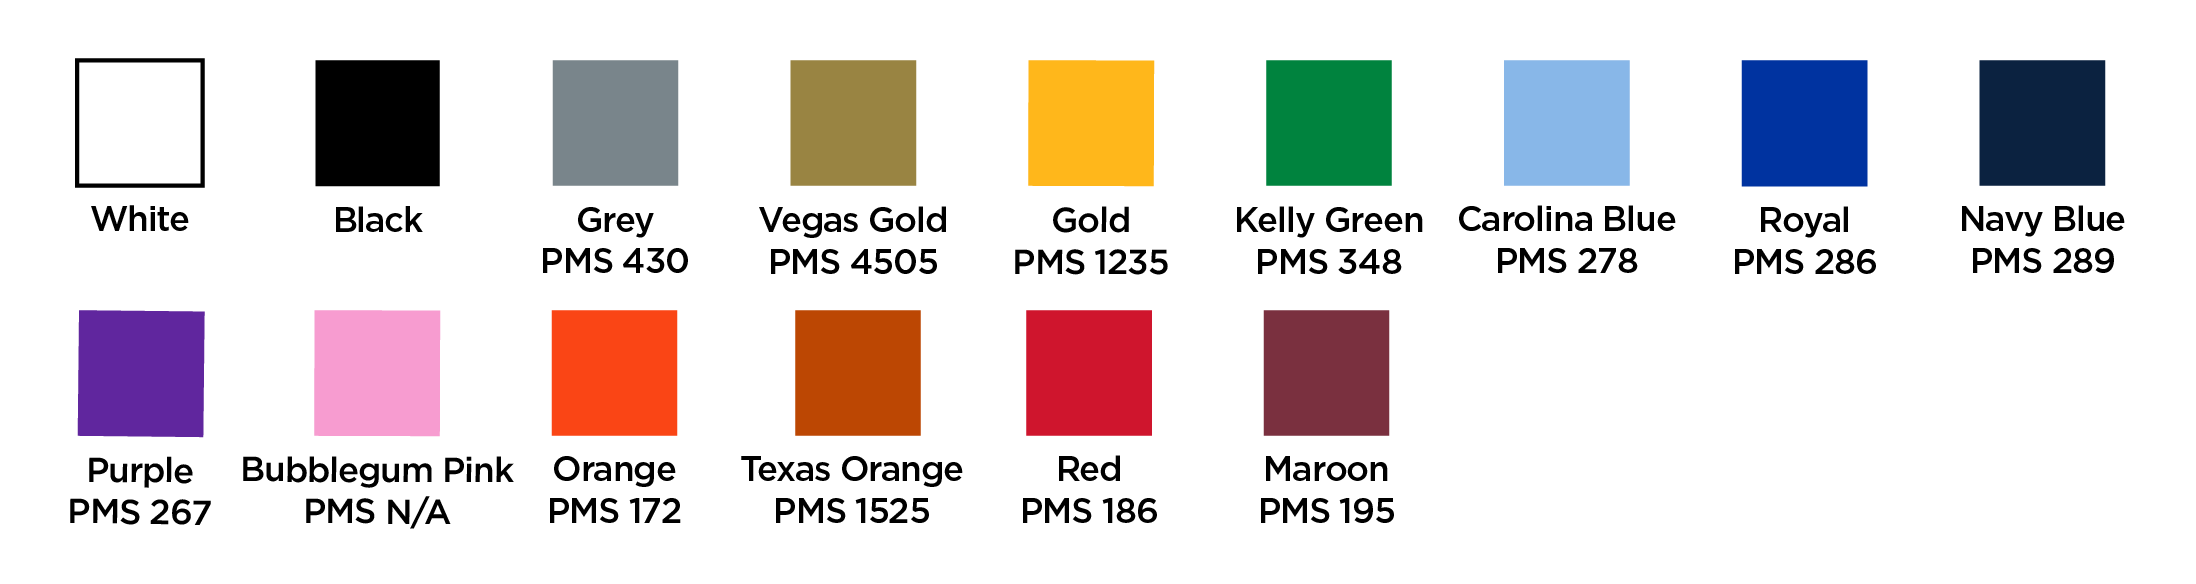 Color Swatch - Master File - 7.13.19-17.png